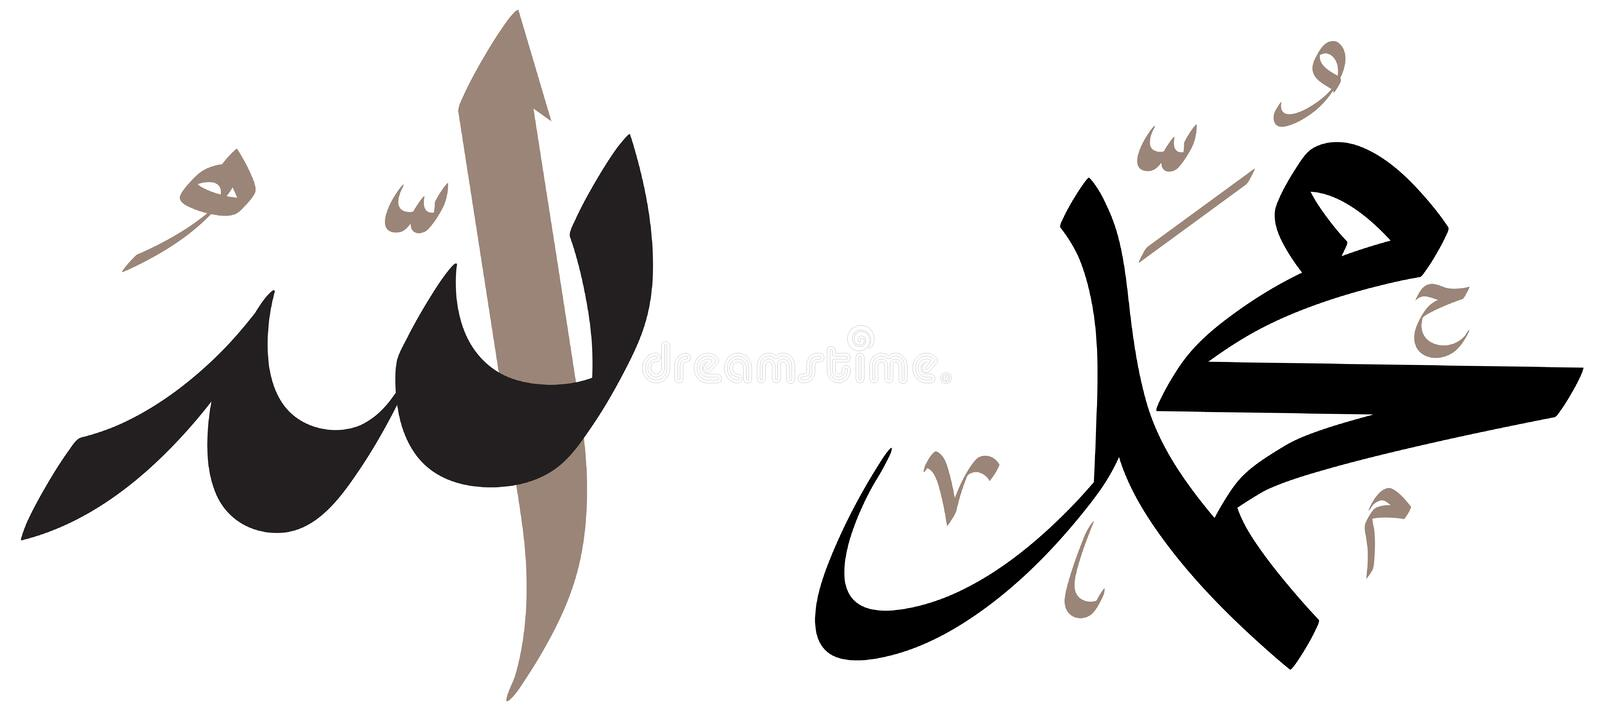 Allah and Mohammad Calligraphy stock illustration